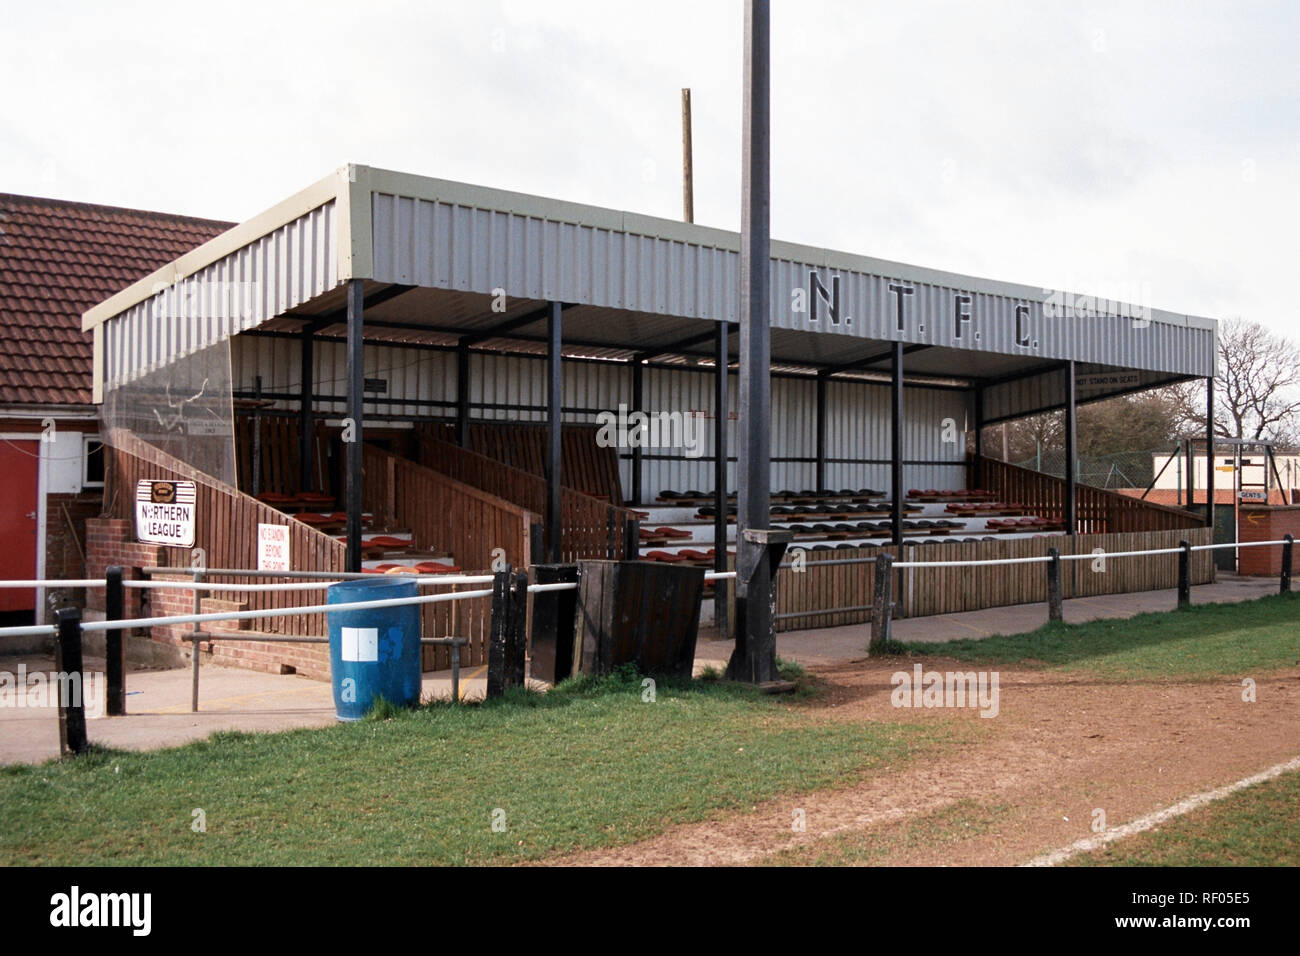 The main stand at Northallerton Town FC Football Ground, Ainderby Road, Romanby, Northallerton, North Yorkshire, pictured on 2nd April 1994 Stock Photo